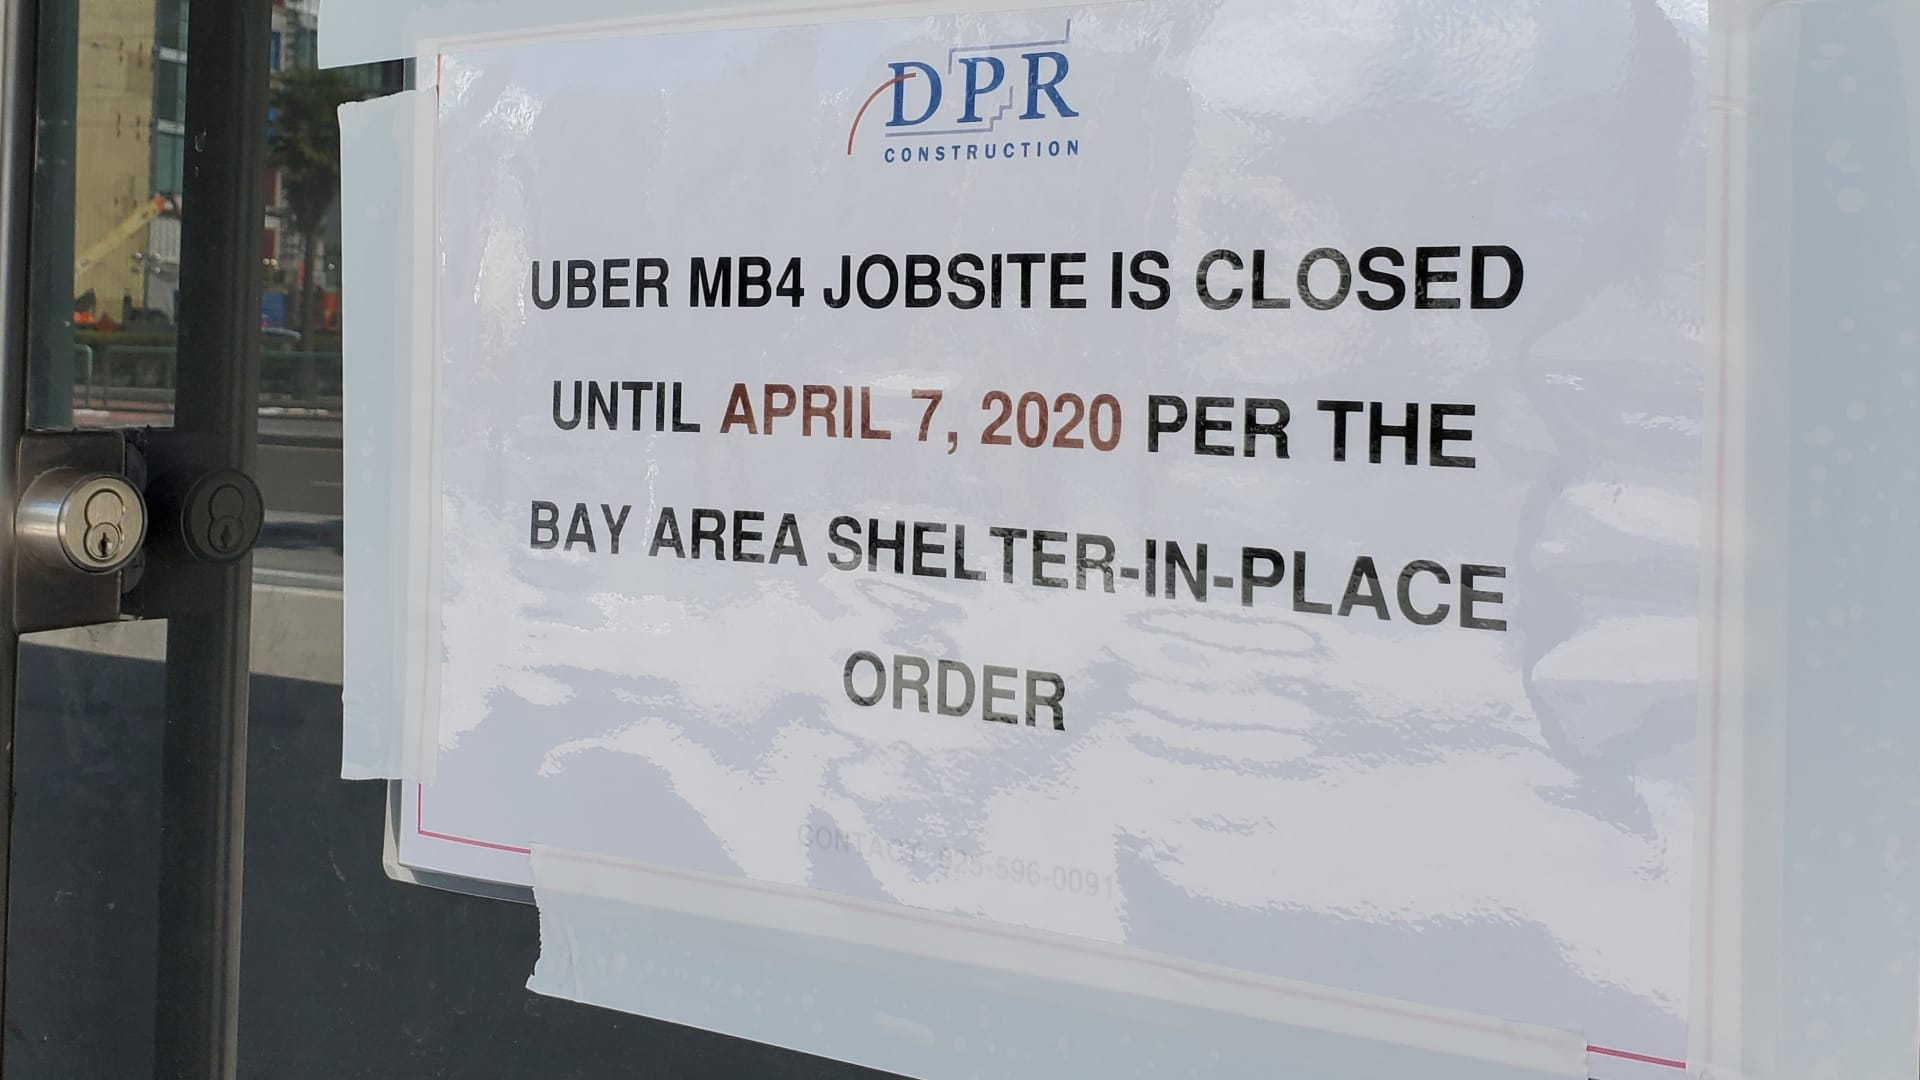 Sign on facade at jobsite for construction of new headquarters of Uber Inc announcing work stoppage and delays during an outbreak of the COVID-19 coronavirus in San Francisco, California, March 19, 2020.